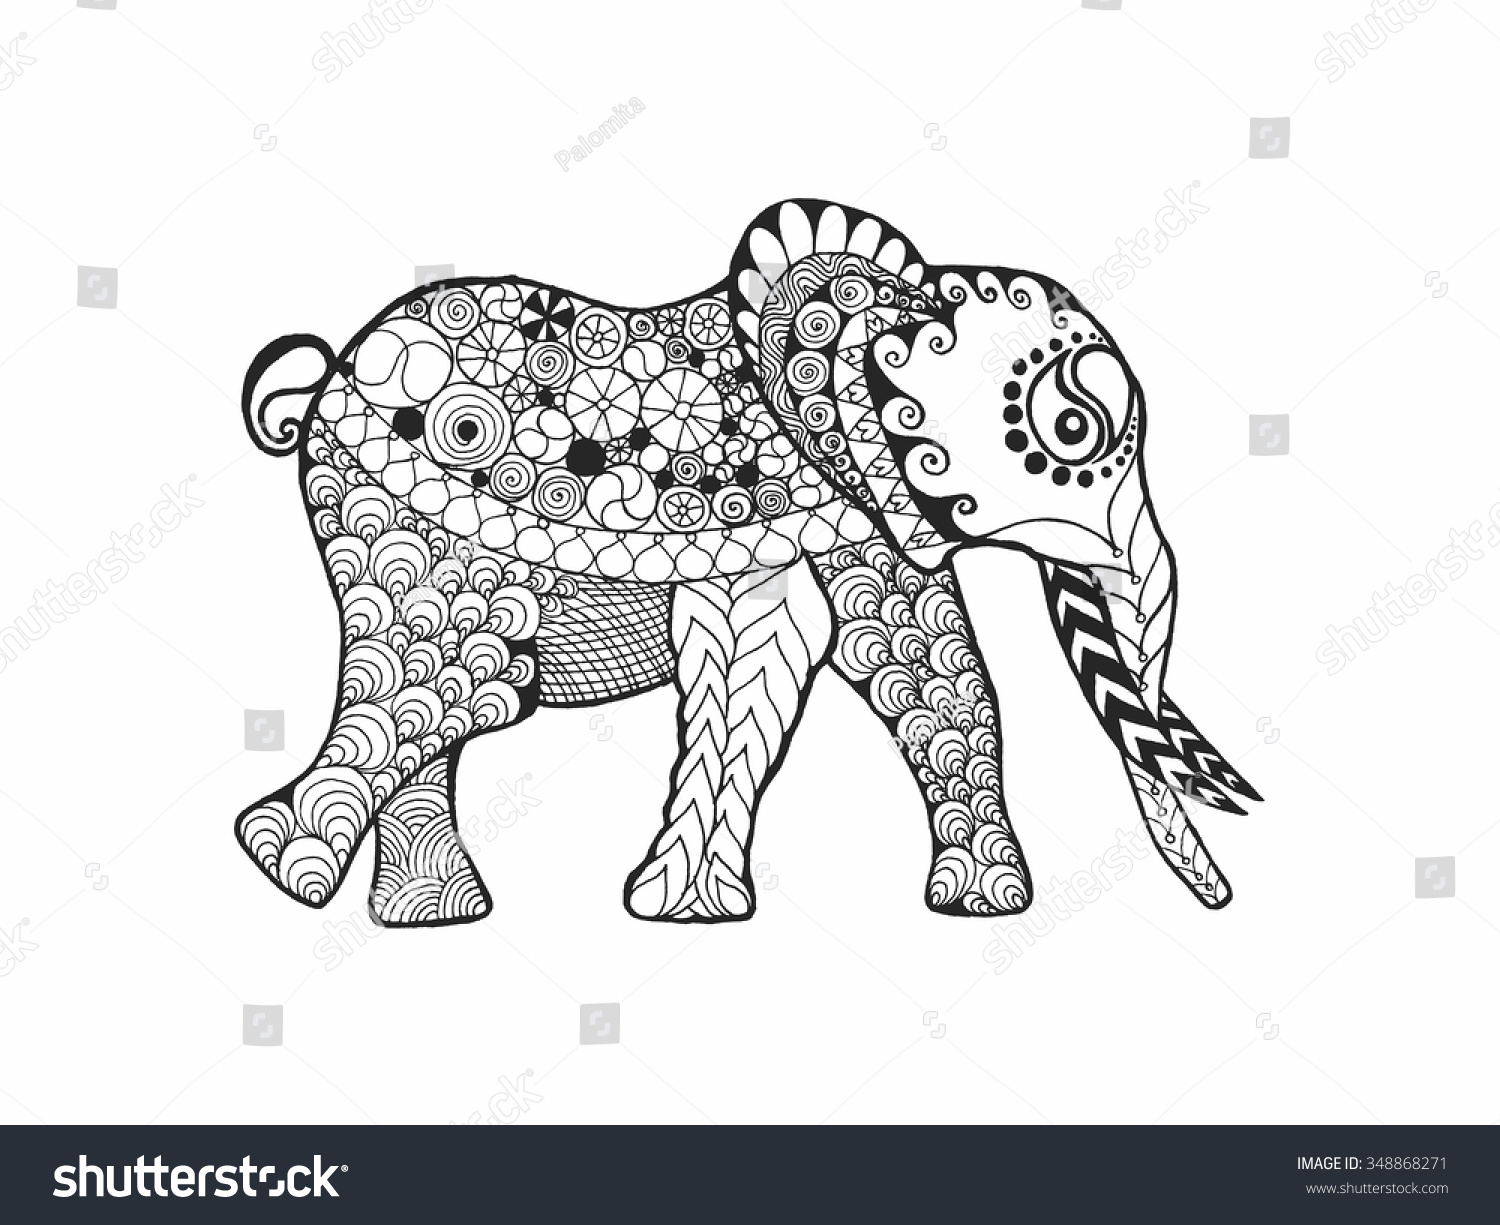 Royalty-free Elephant. Adult antistress coloring… #348868271 Stock ...